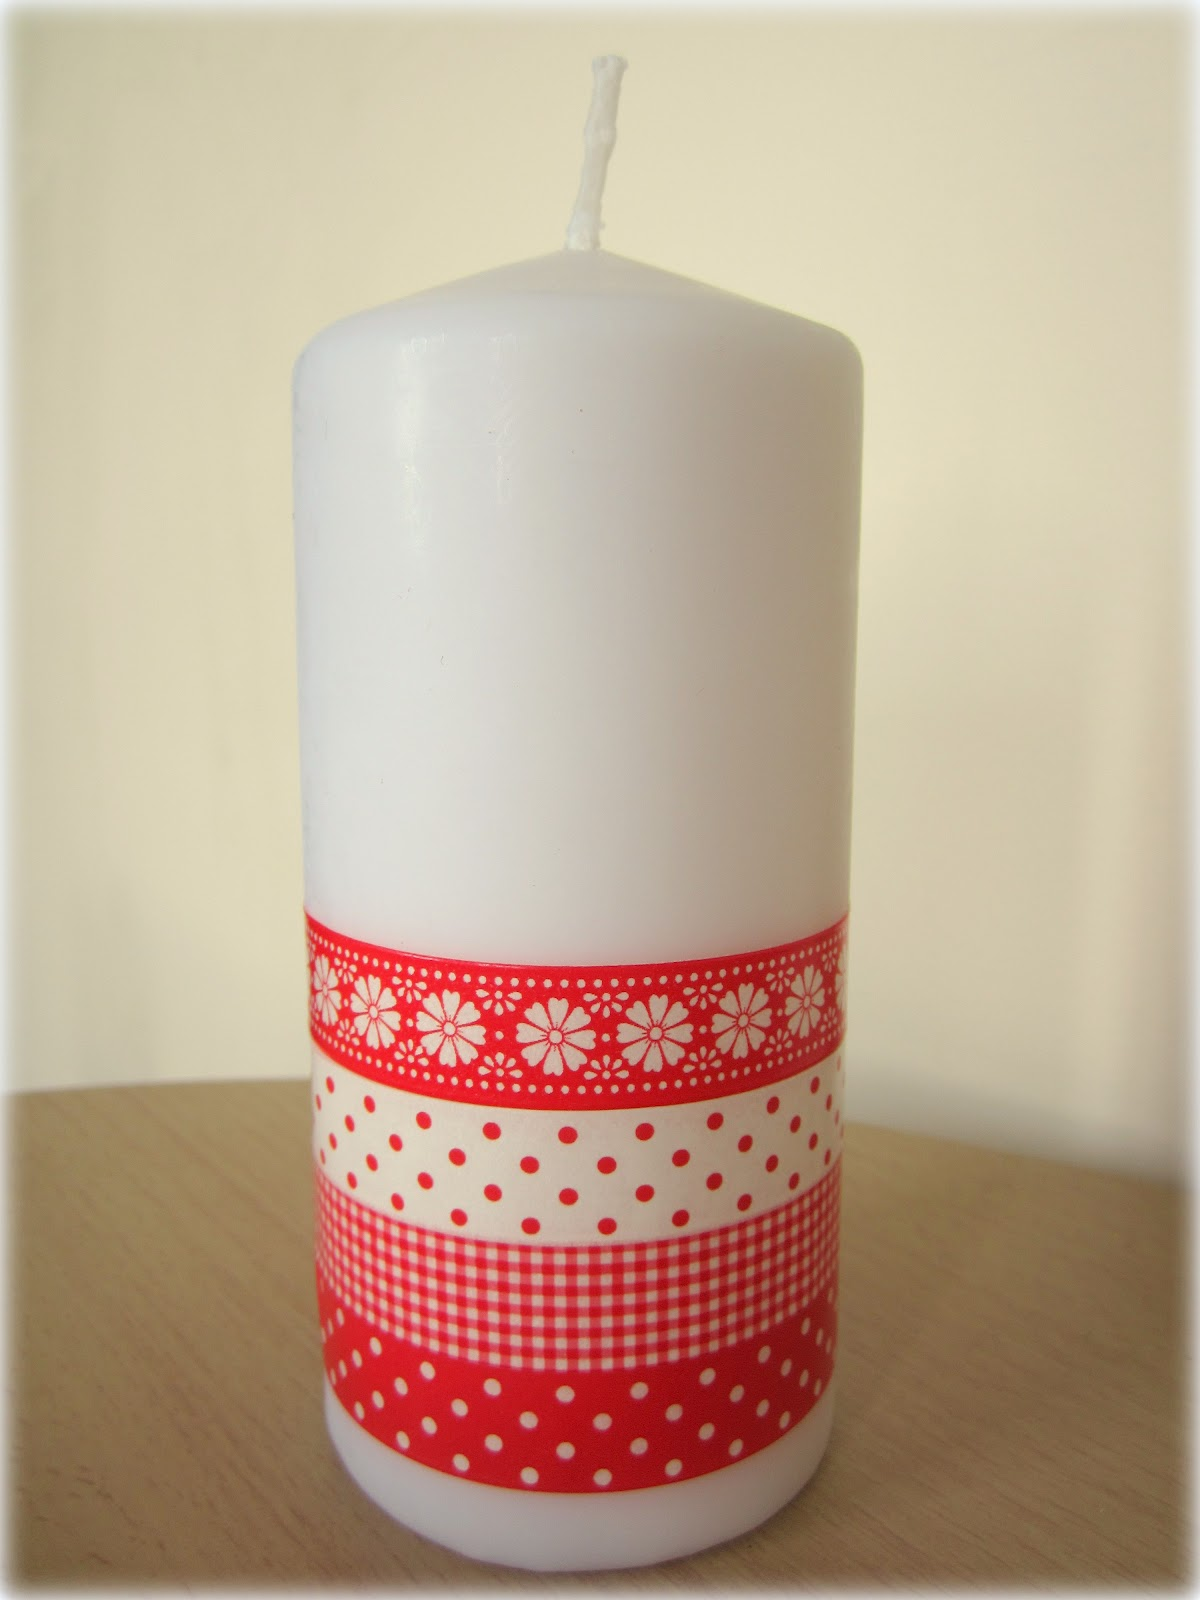 Washi tape crafty weekend craft projects for the weekend - Washi tape ideas ...